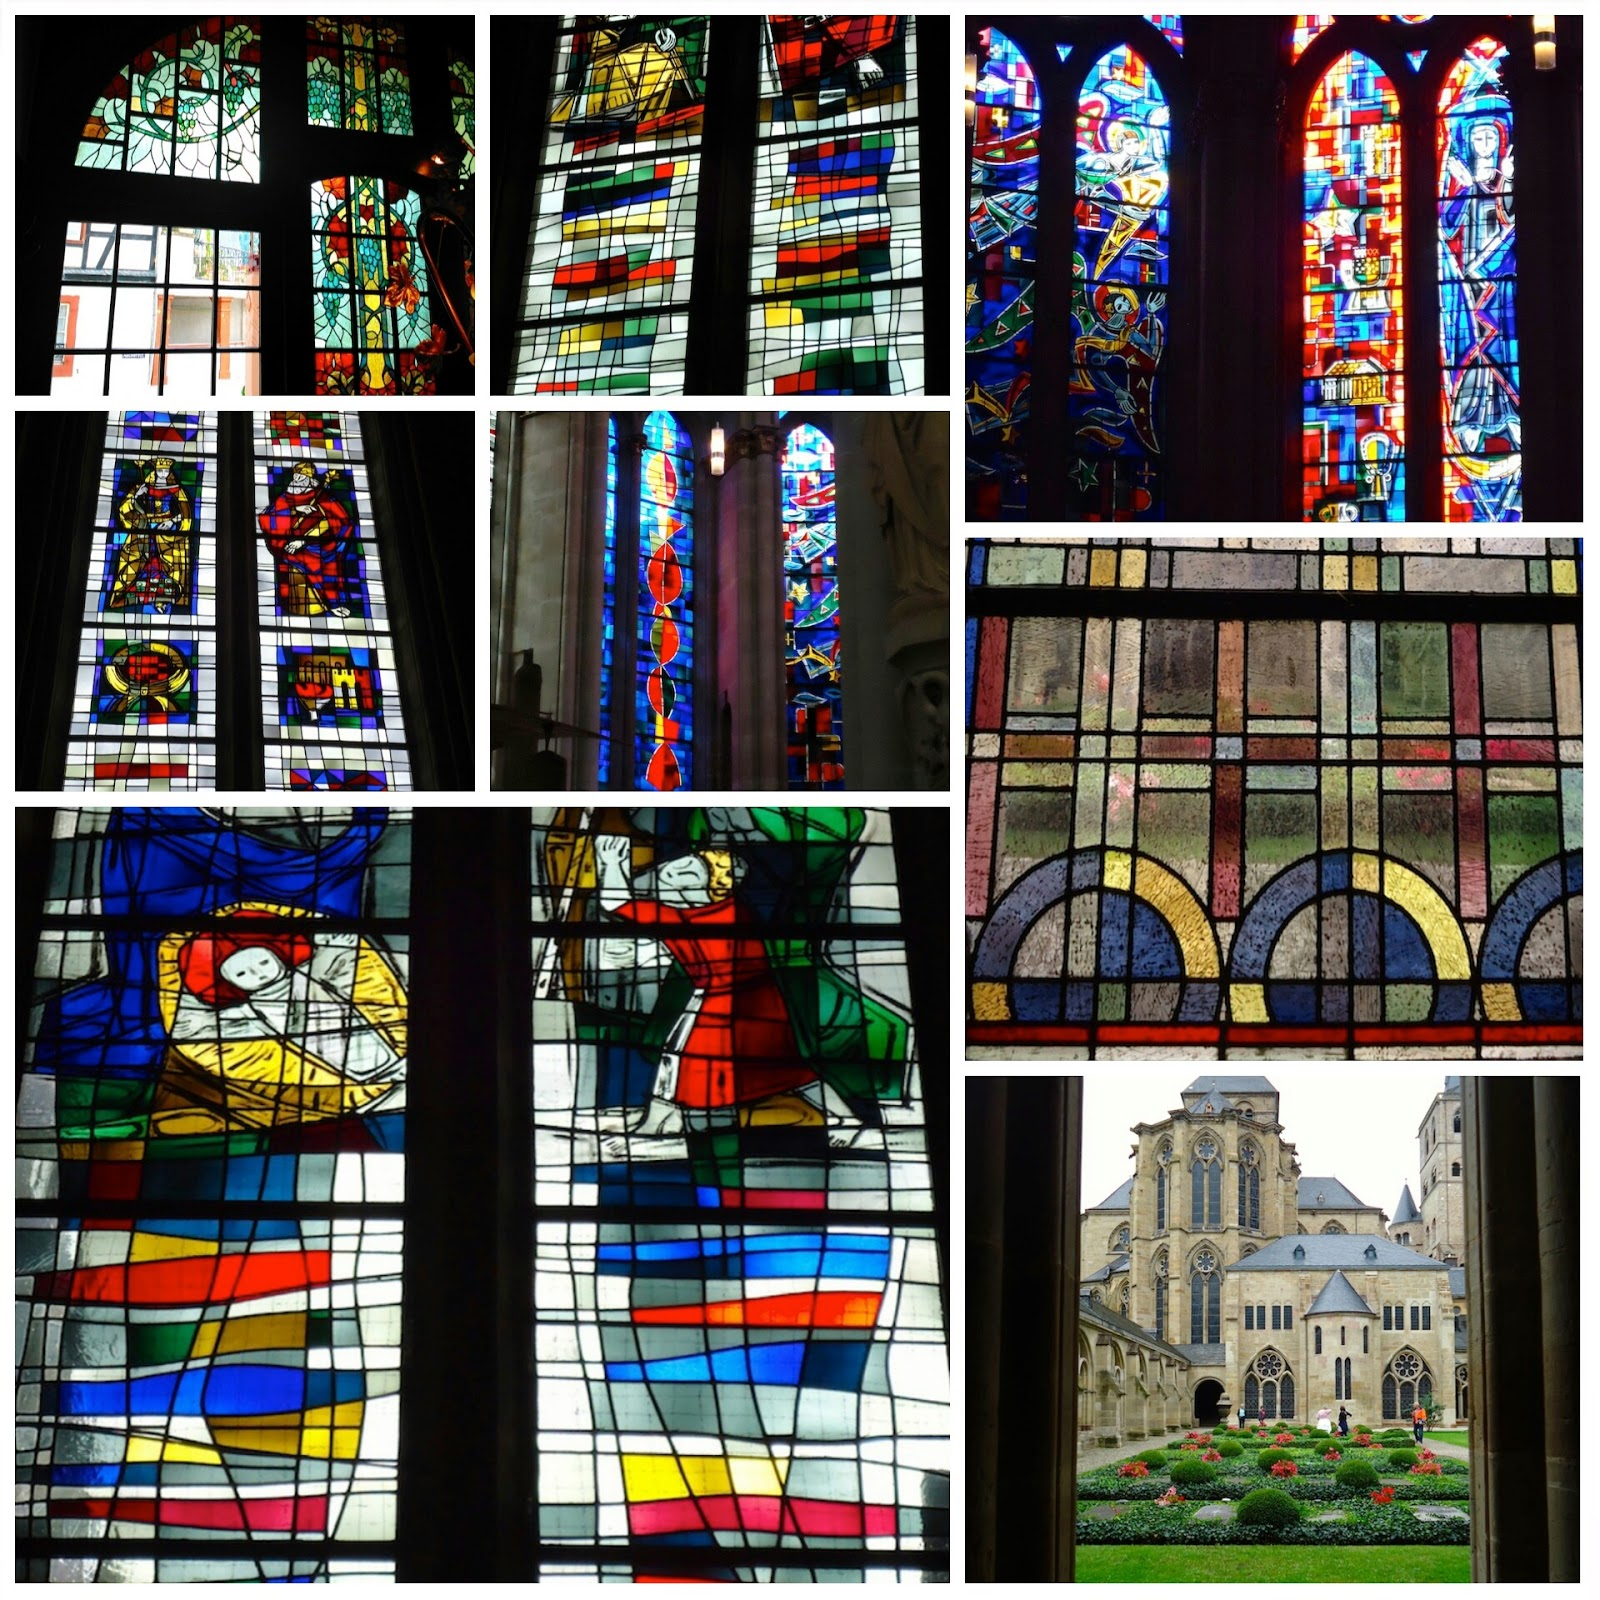 Stained glass windows at the Dom and Liebfrauenbasilika in Trier, art nouveau window from Hotel Bellevue, Traben Trarbach